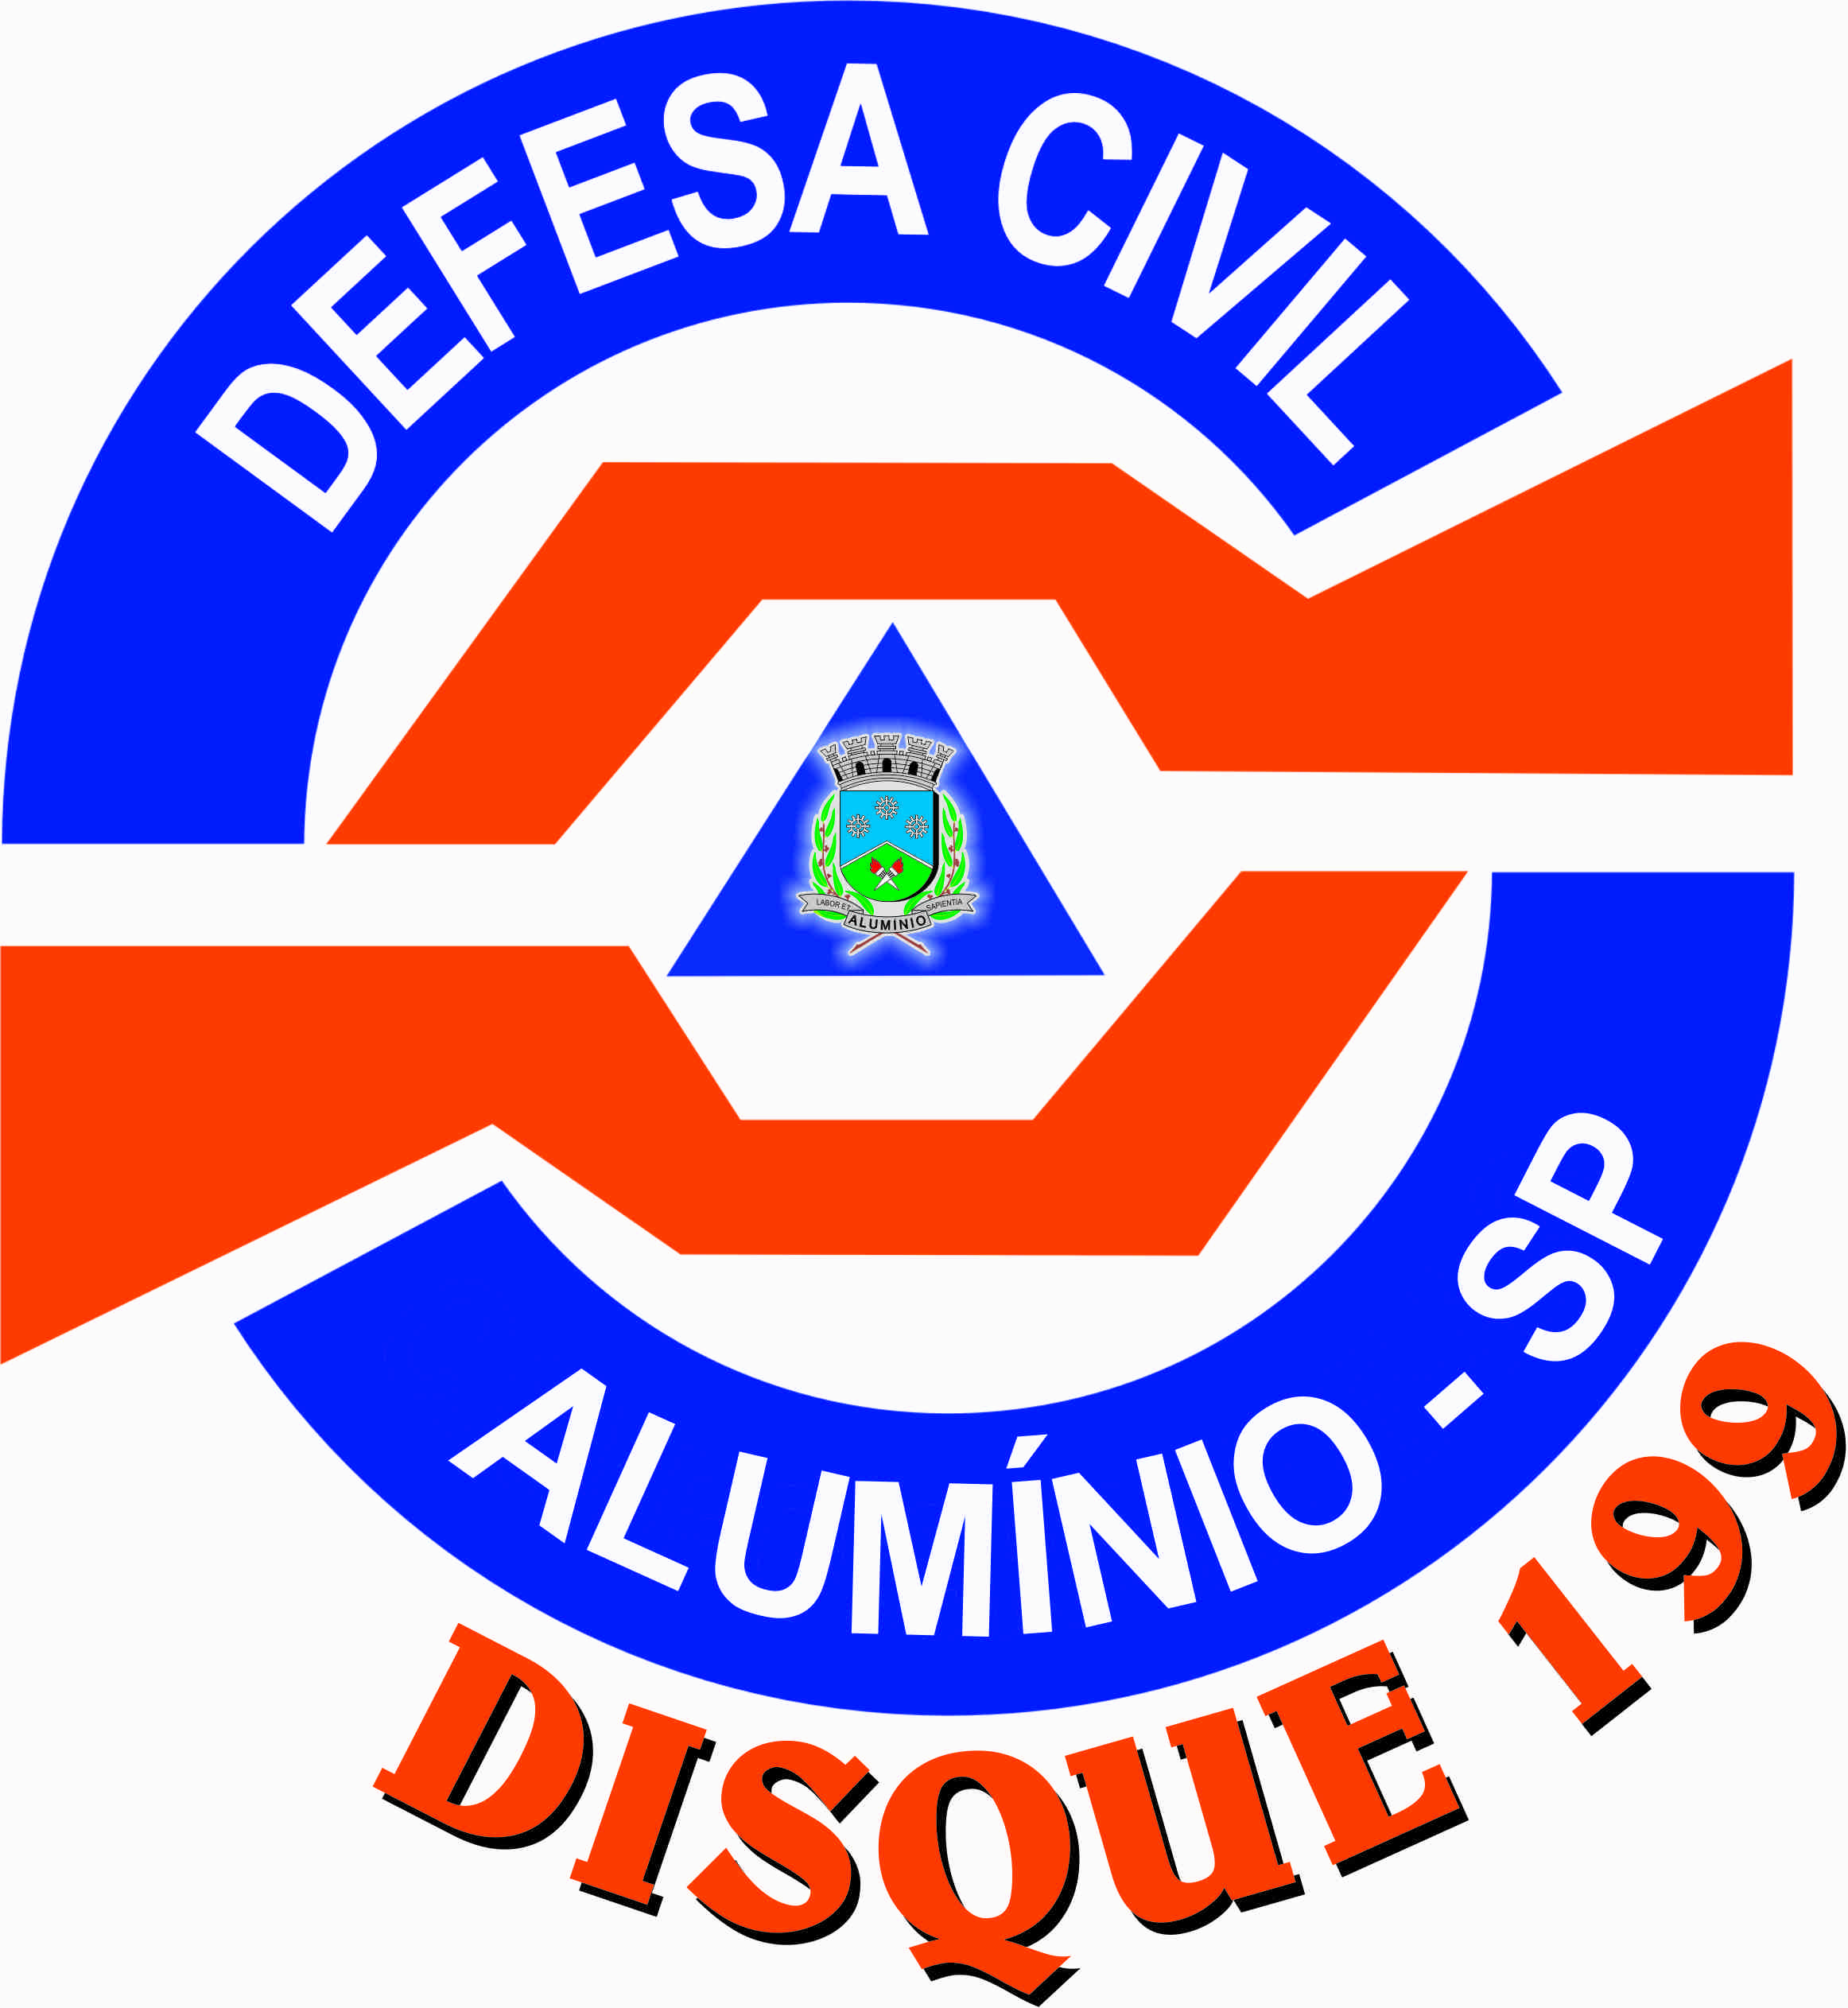 DEFESACIVIL